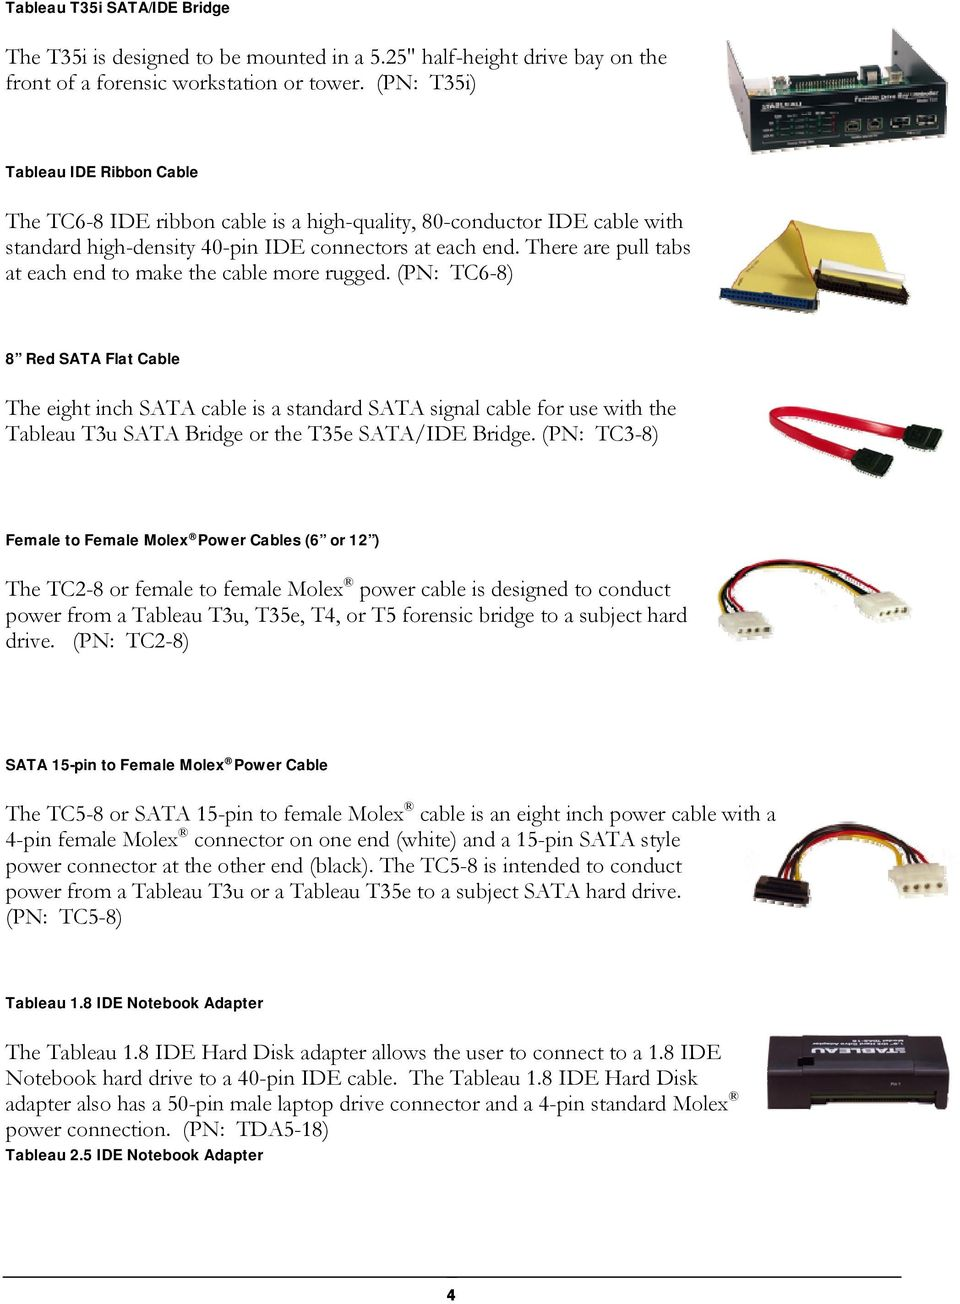 Volume Forensic Computers Tableau T35i Sata Ide Bridge User Guide Pdf Notebook Interface Cdrom To Usb External Drive Circuit Board Red There Are Pull Tabs At Each End Make The Cable More Rugged